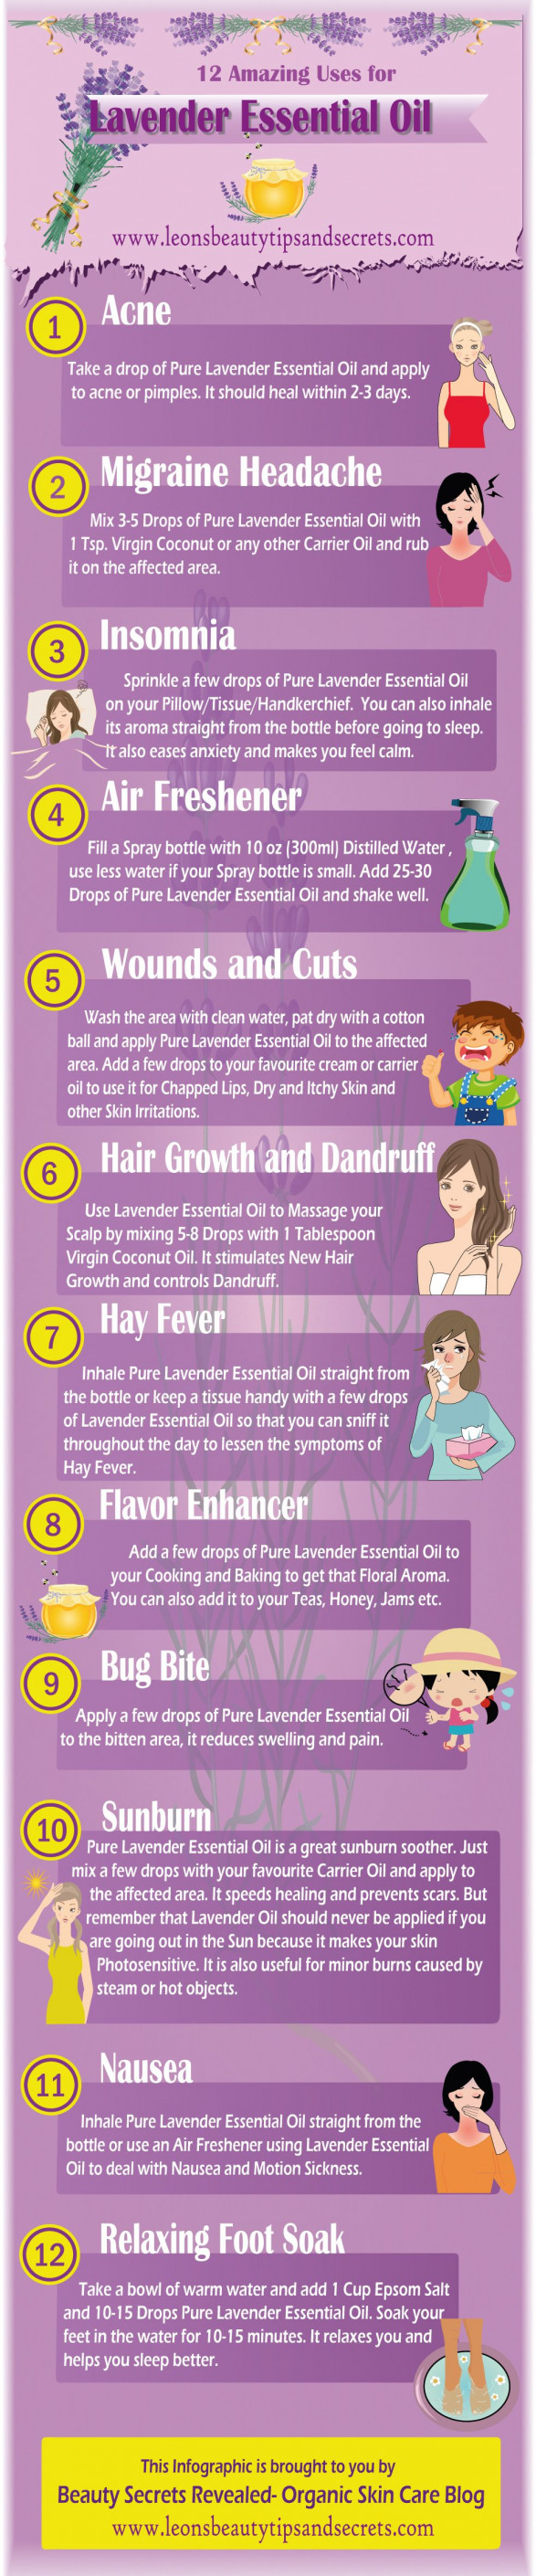 12 Amazing Uses For Lavender Essential Oil